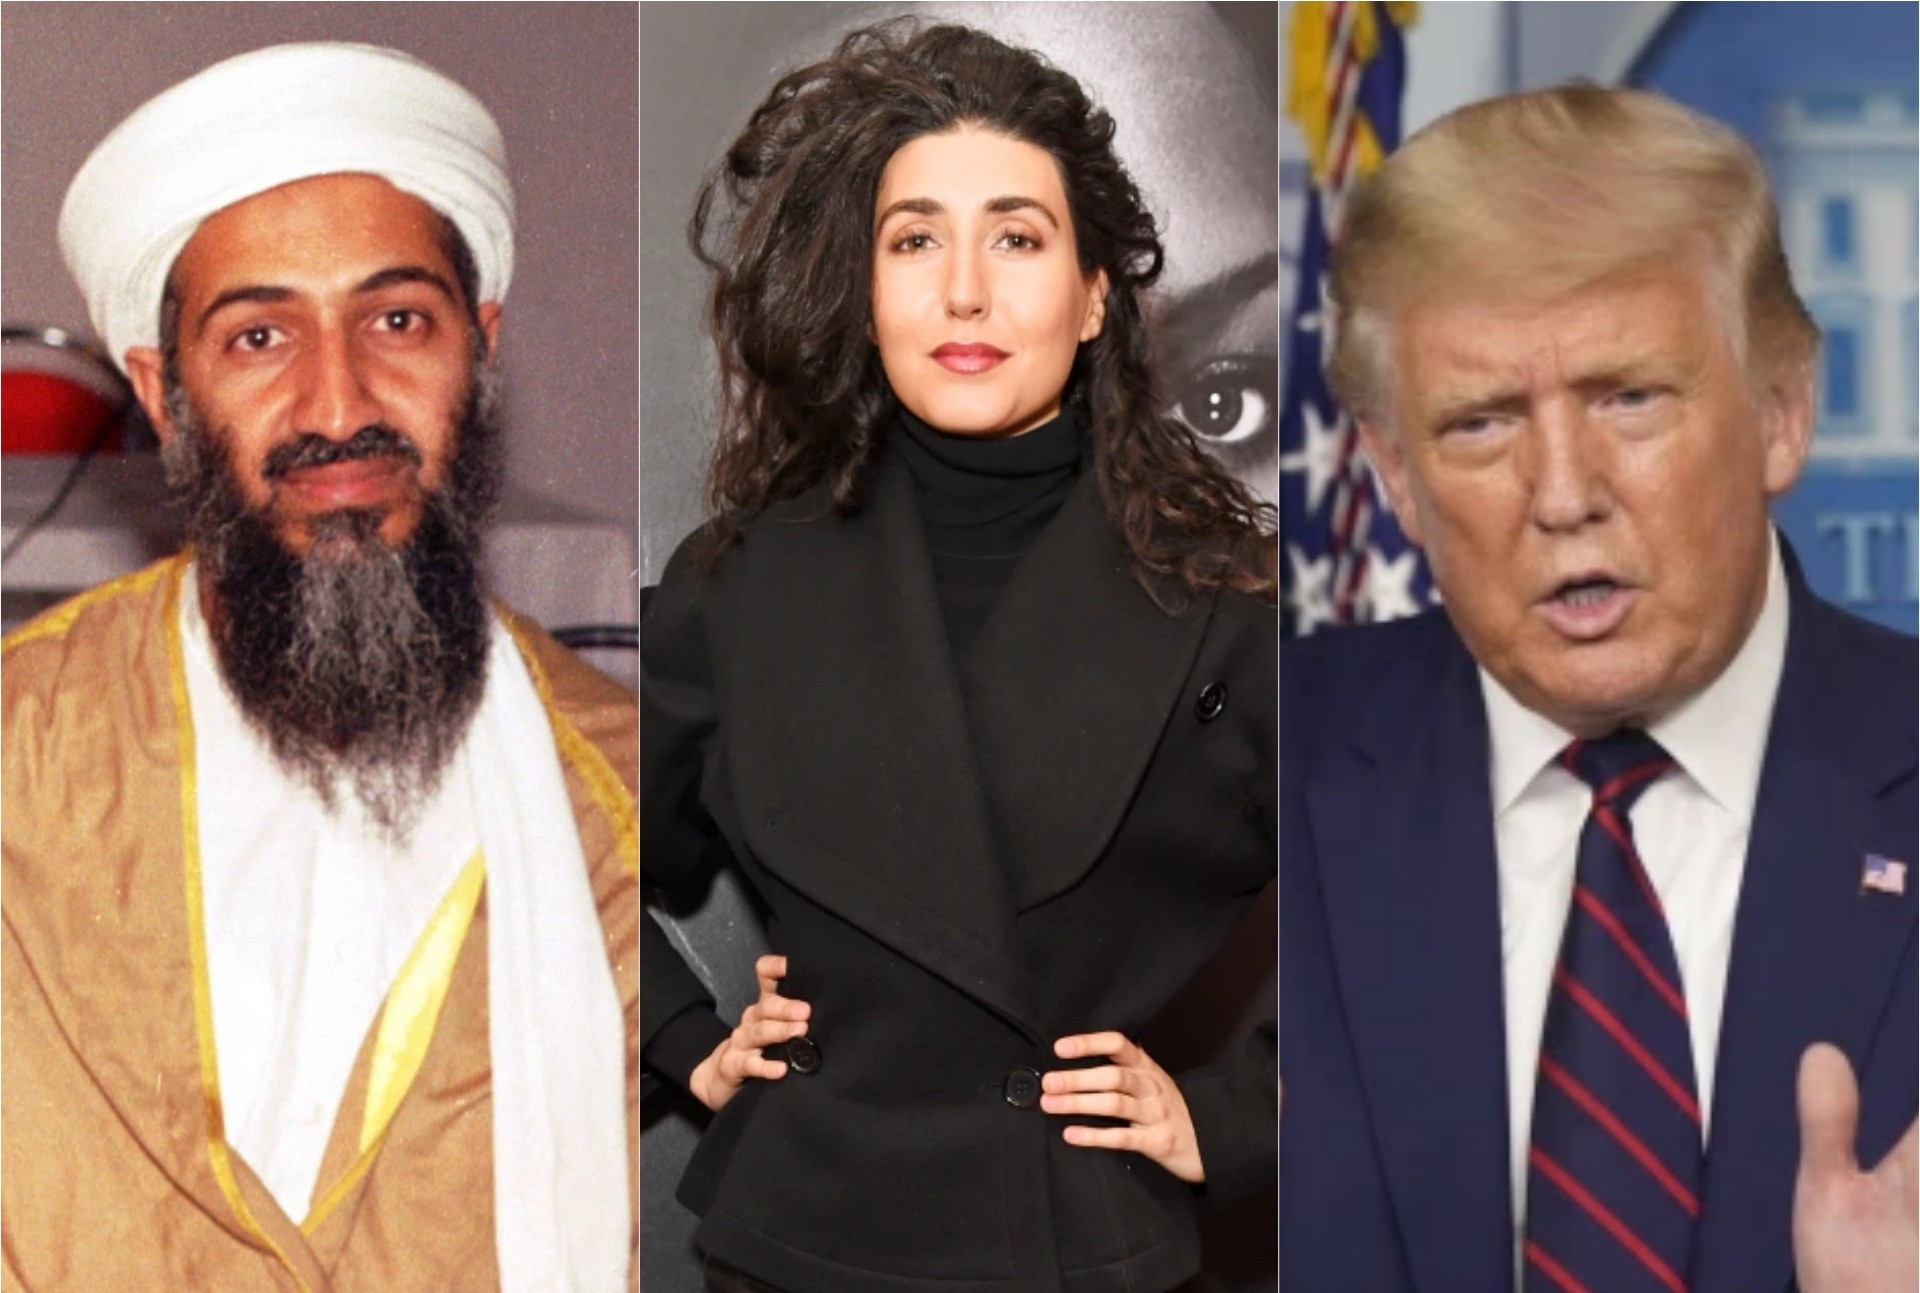 Trump must be re-elected, only him can prevent another 9/11 - Osama bin Laden?s niece says